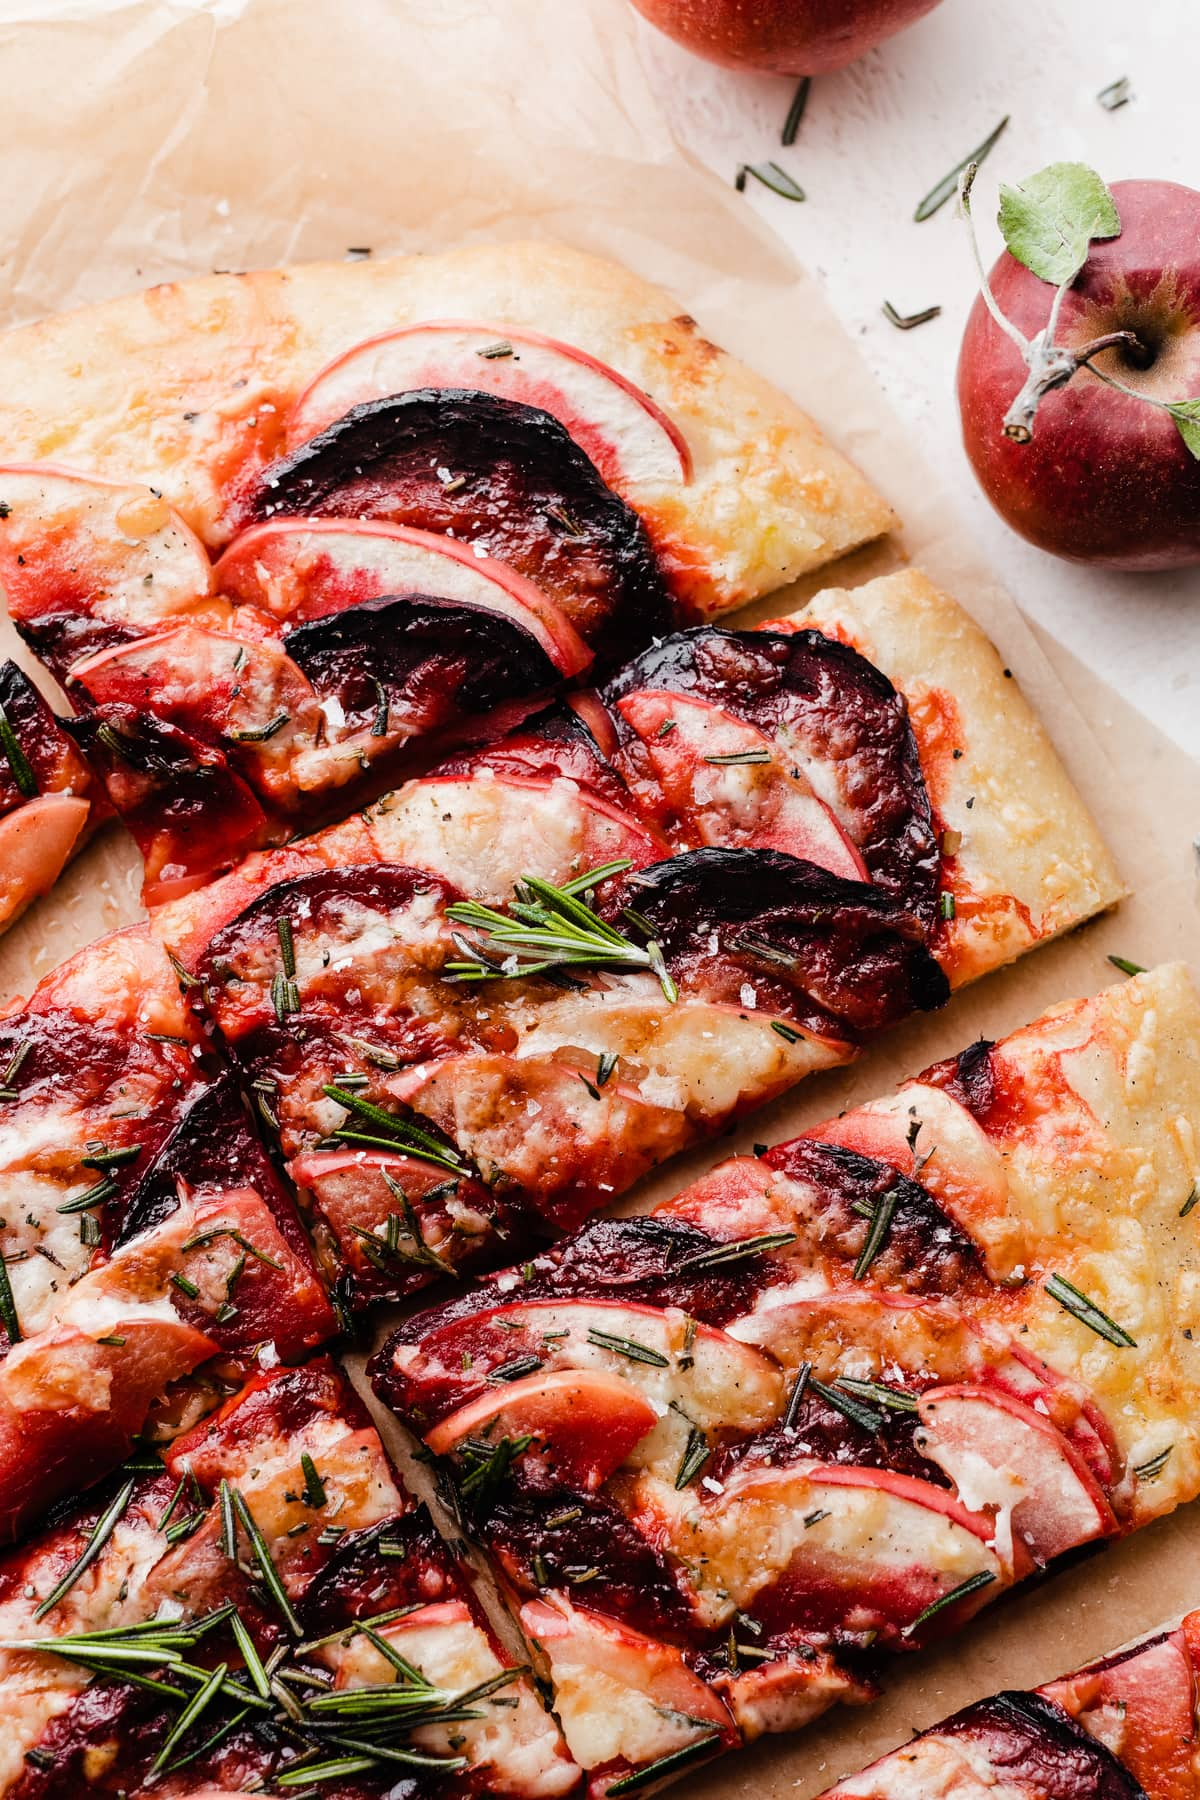 Apple Cheddar Pizza with Beets